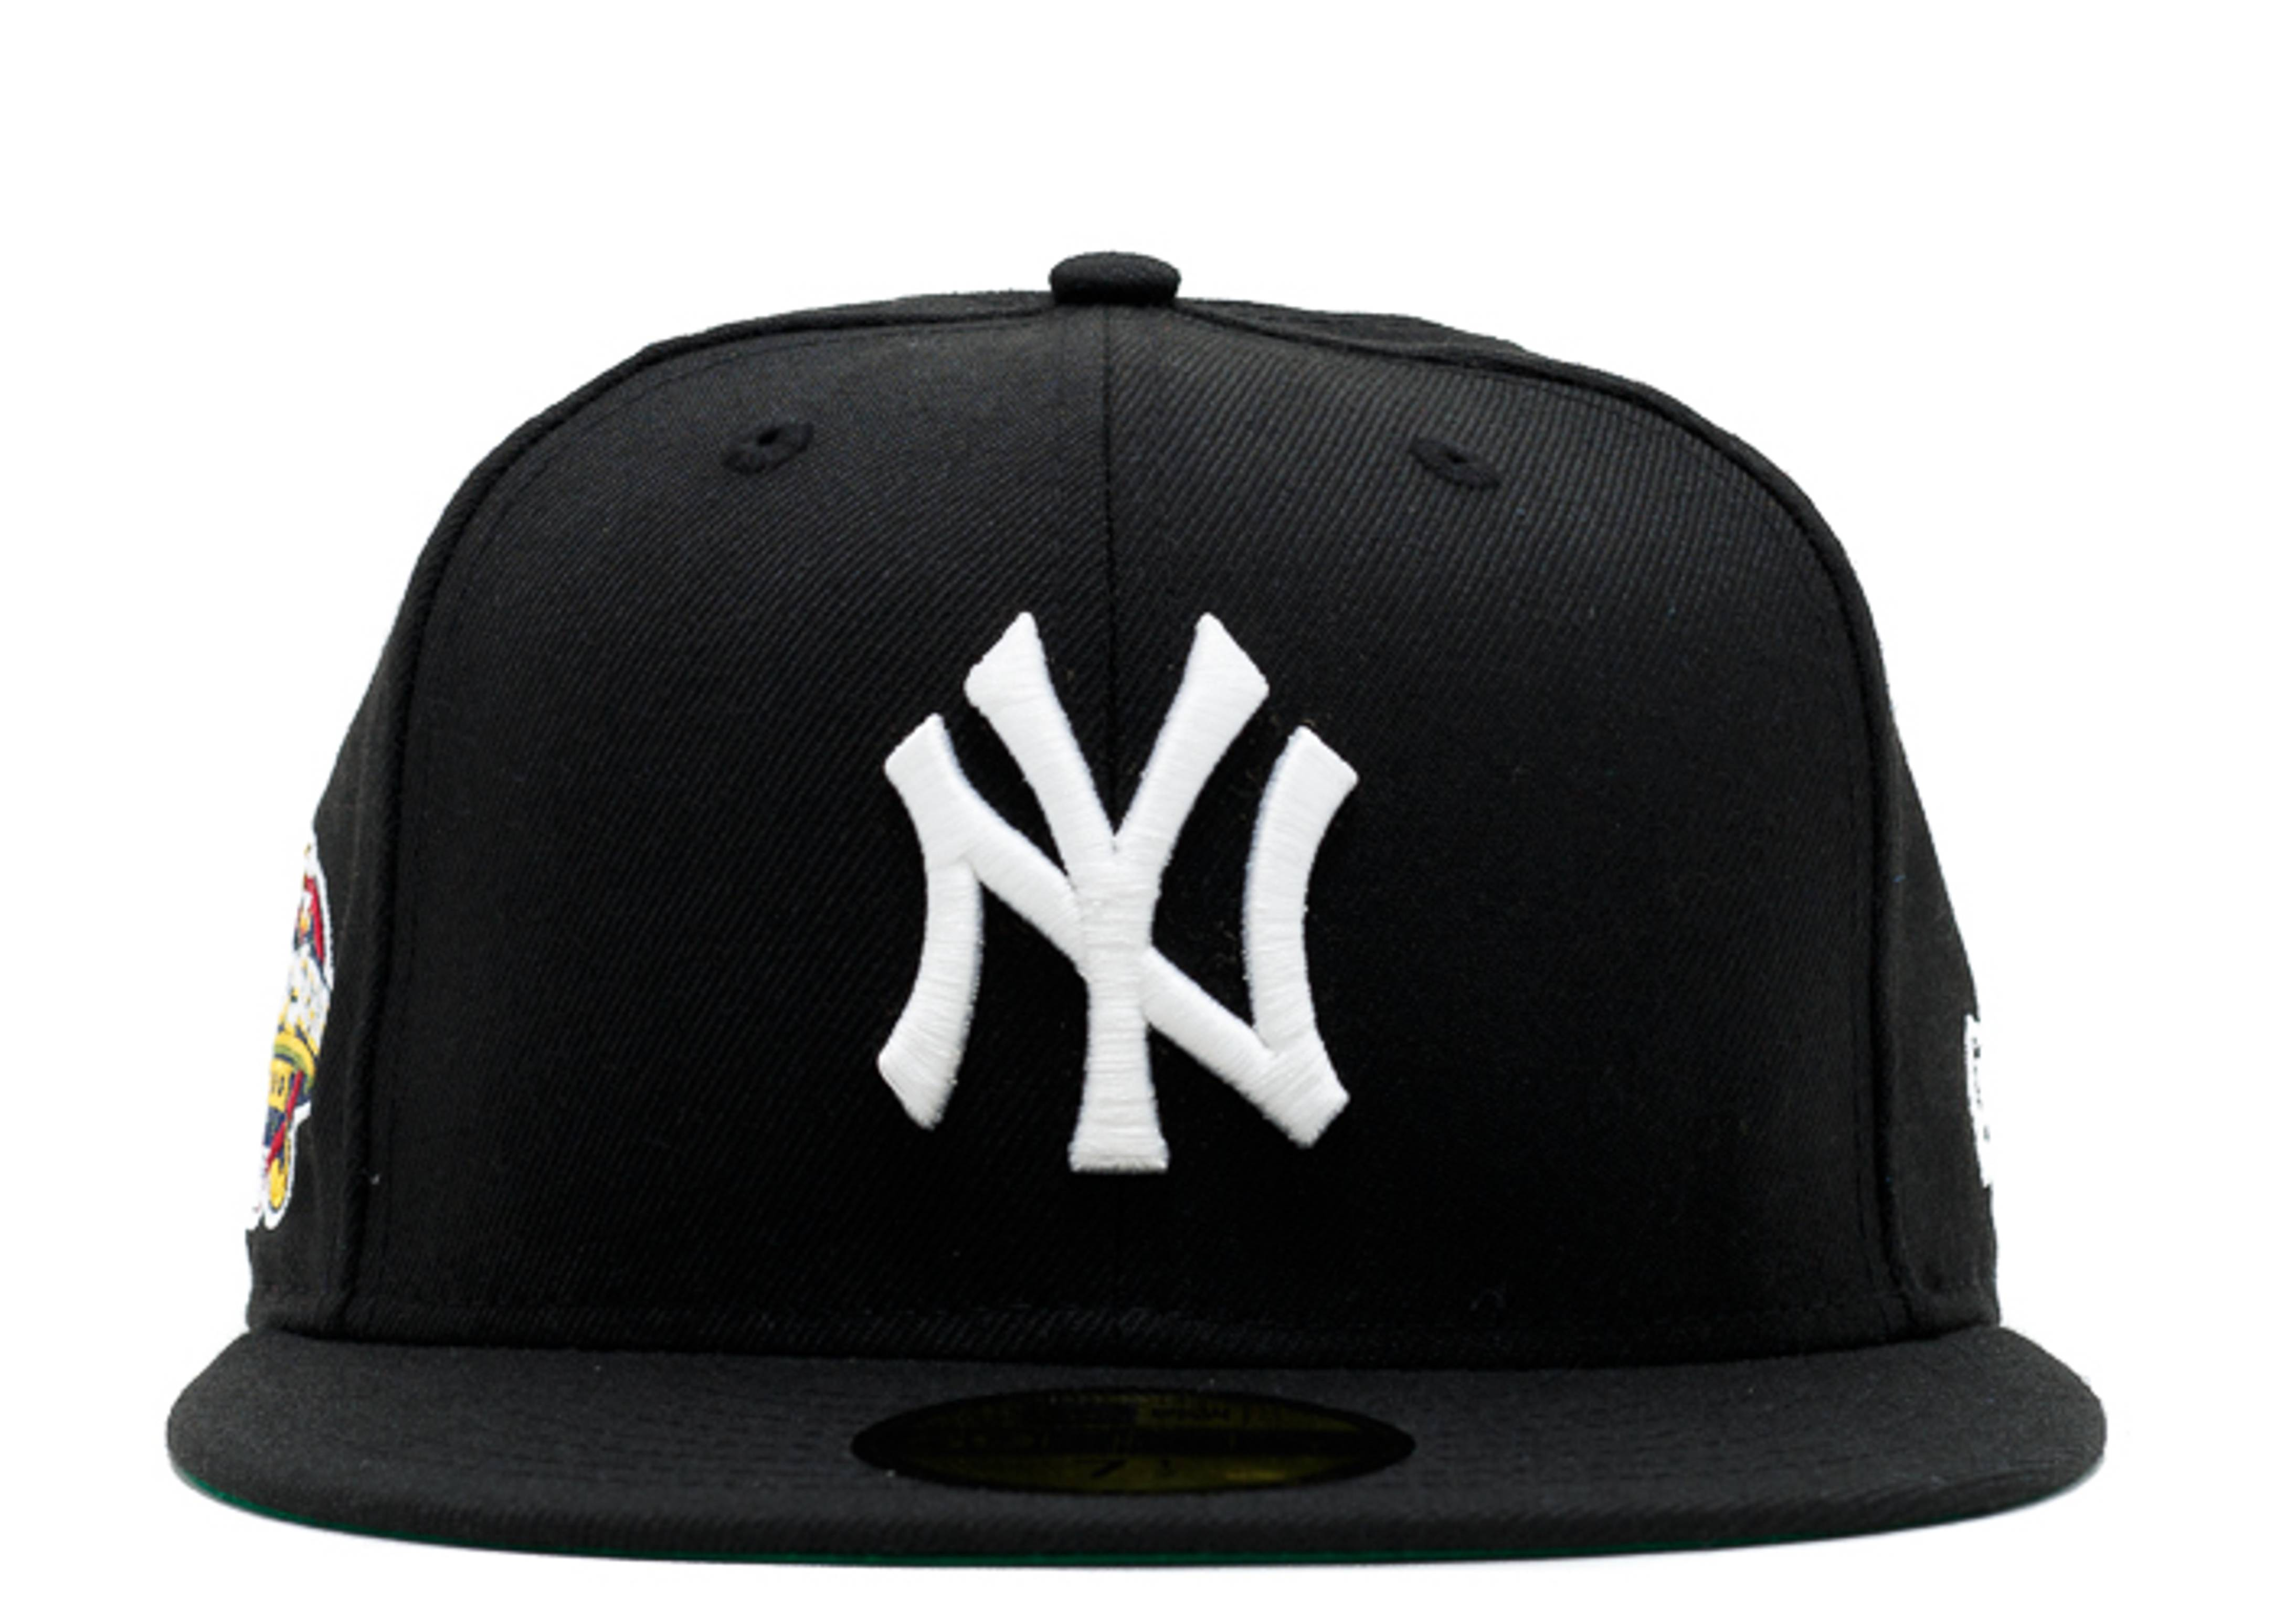 sale retailer 57f1c fef36 new york yankees fitted